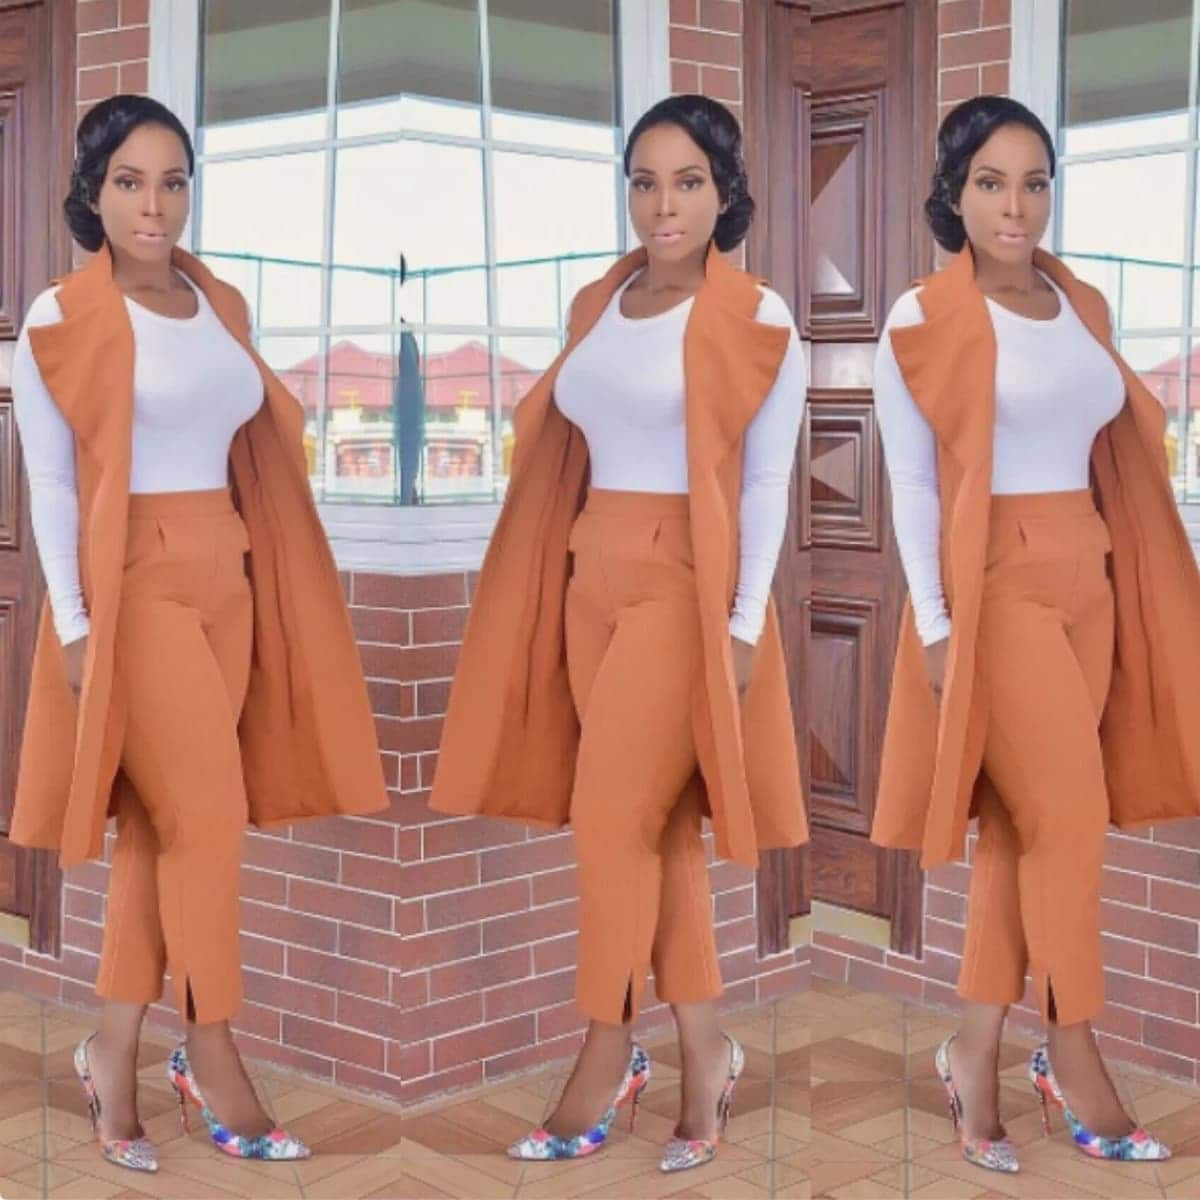 Benedicta Gafah mesmerizes fans with her amazingly gorgeous looks